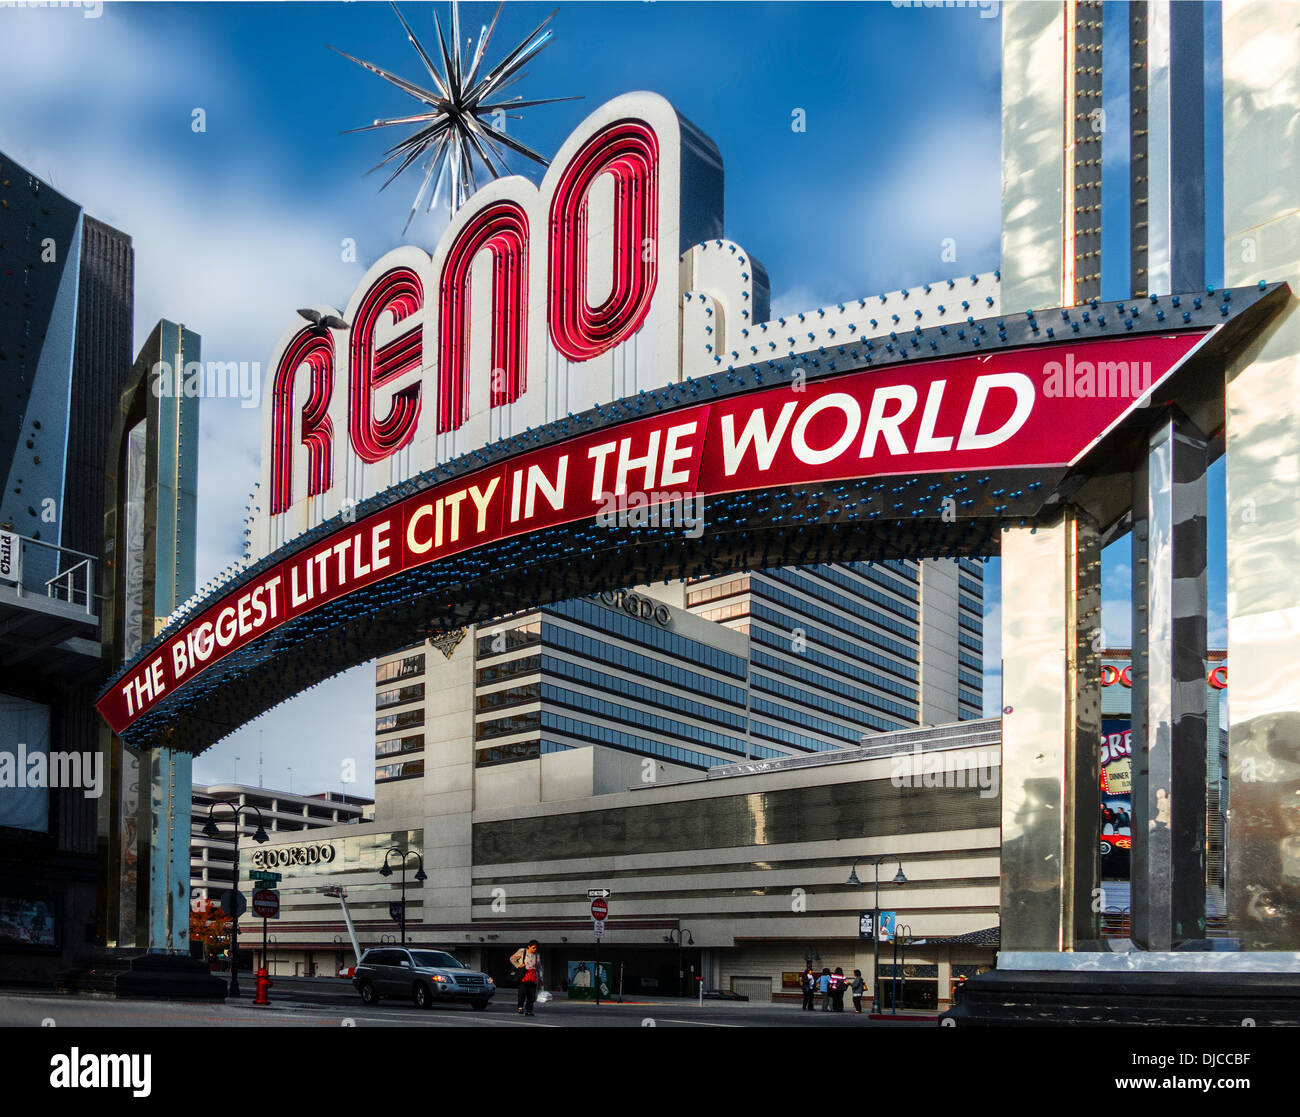 A daytime front on three quarter view of the RENO the biggest little city in the world sign,in Reno Nevada - Stock Image